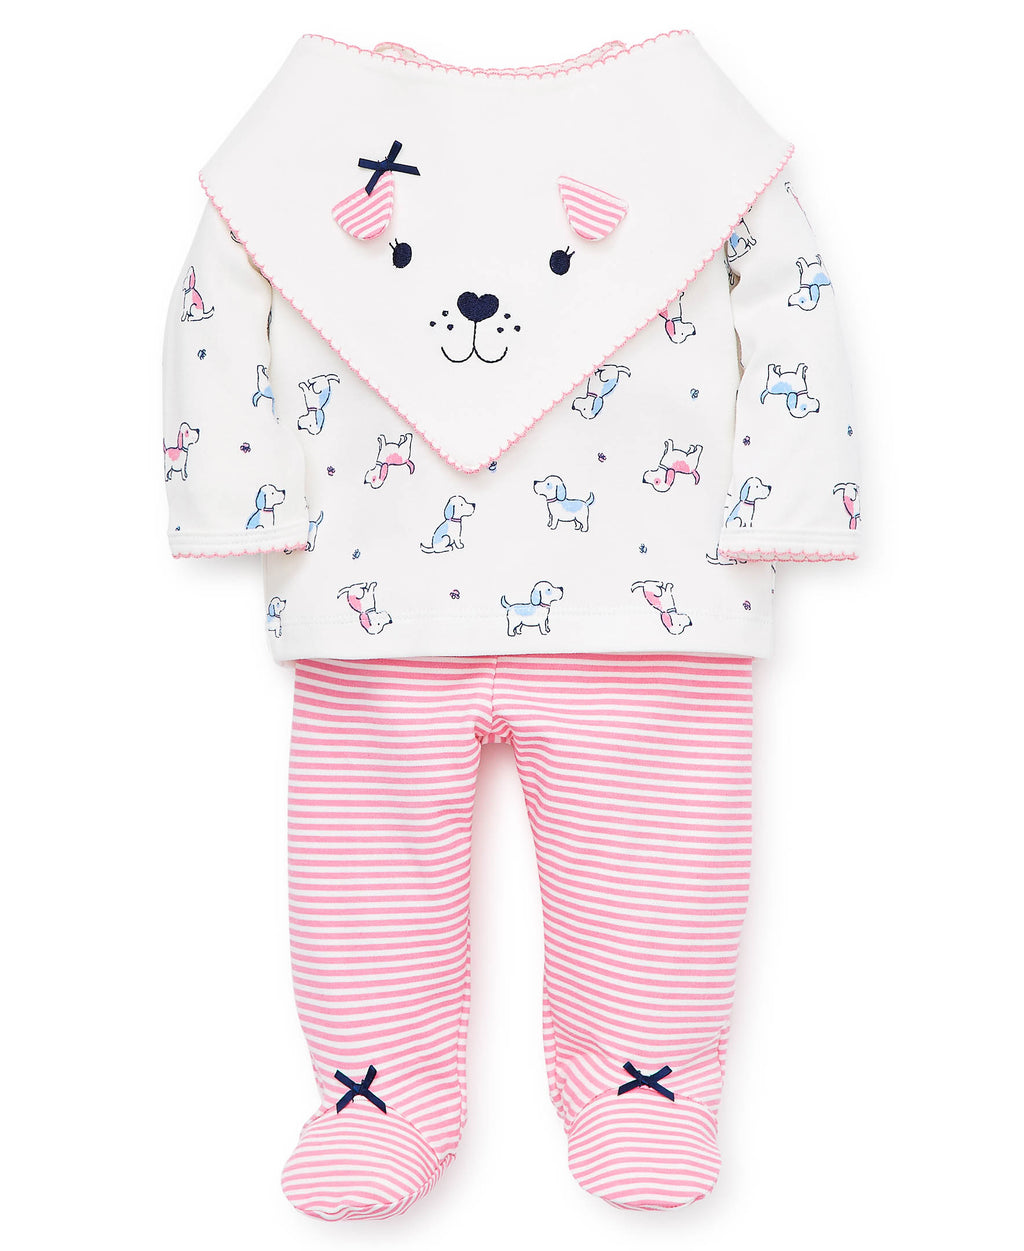 Cute Puppy Pant Set